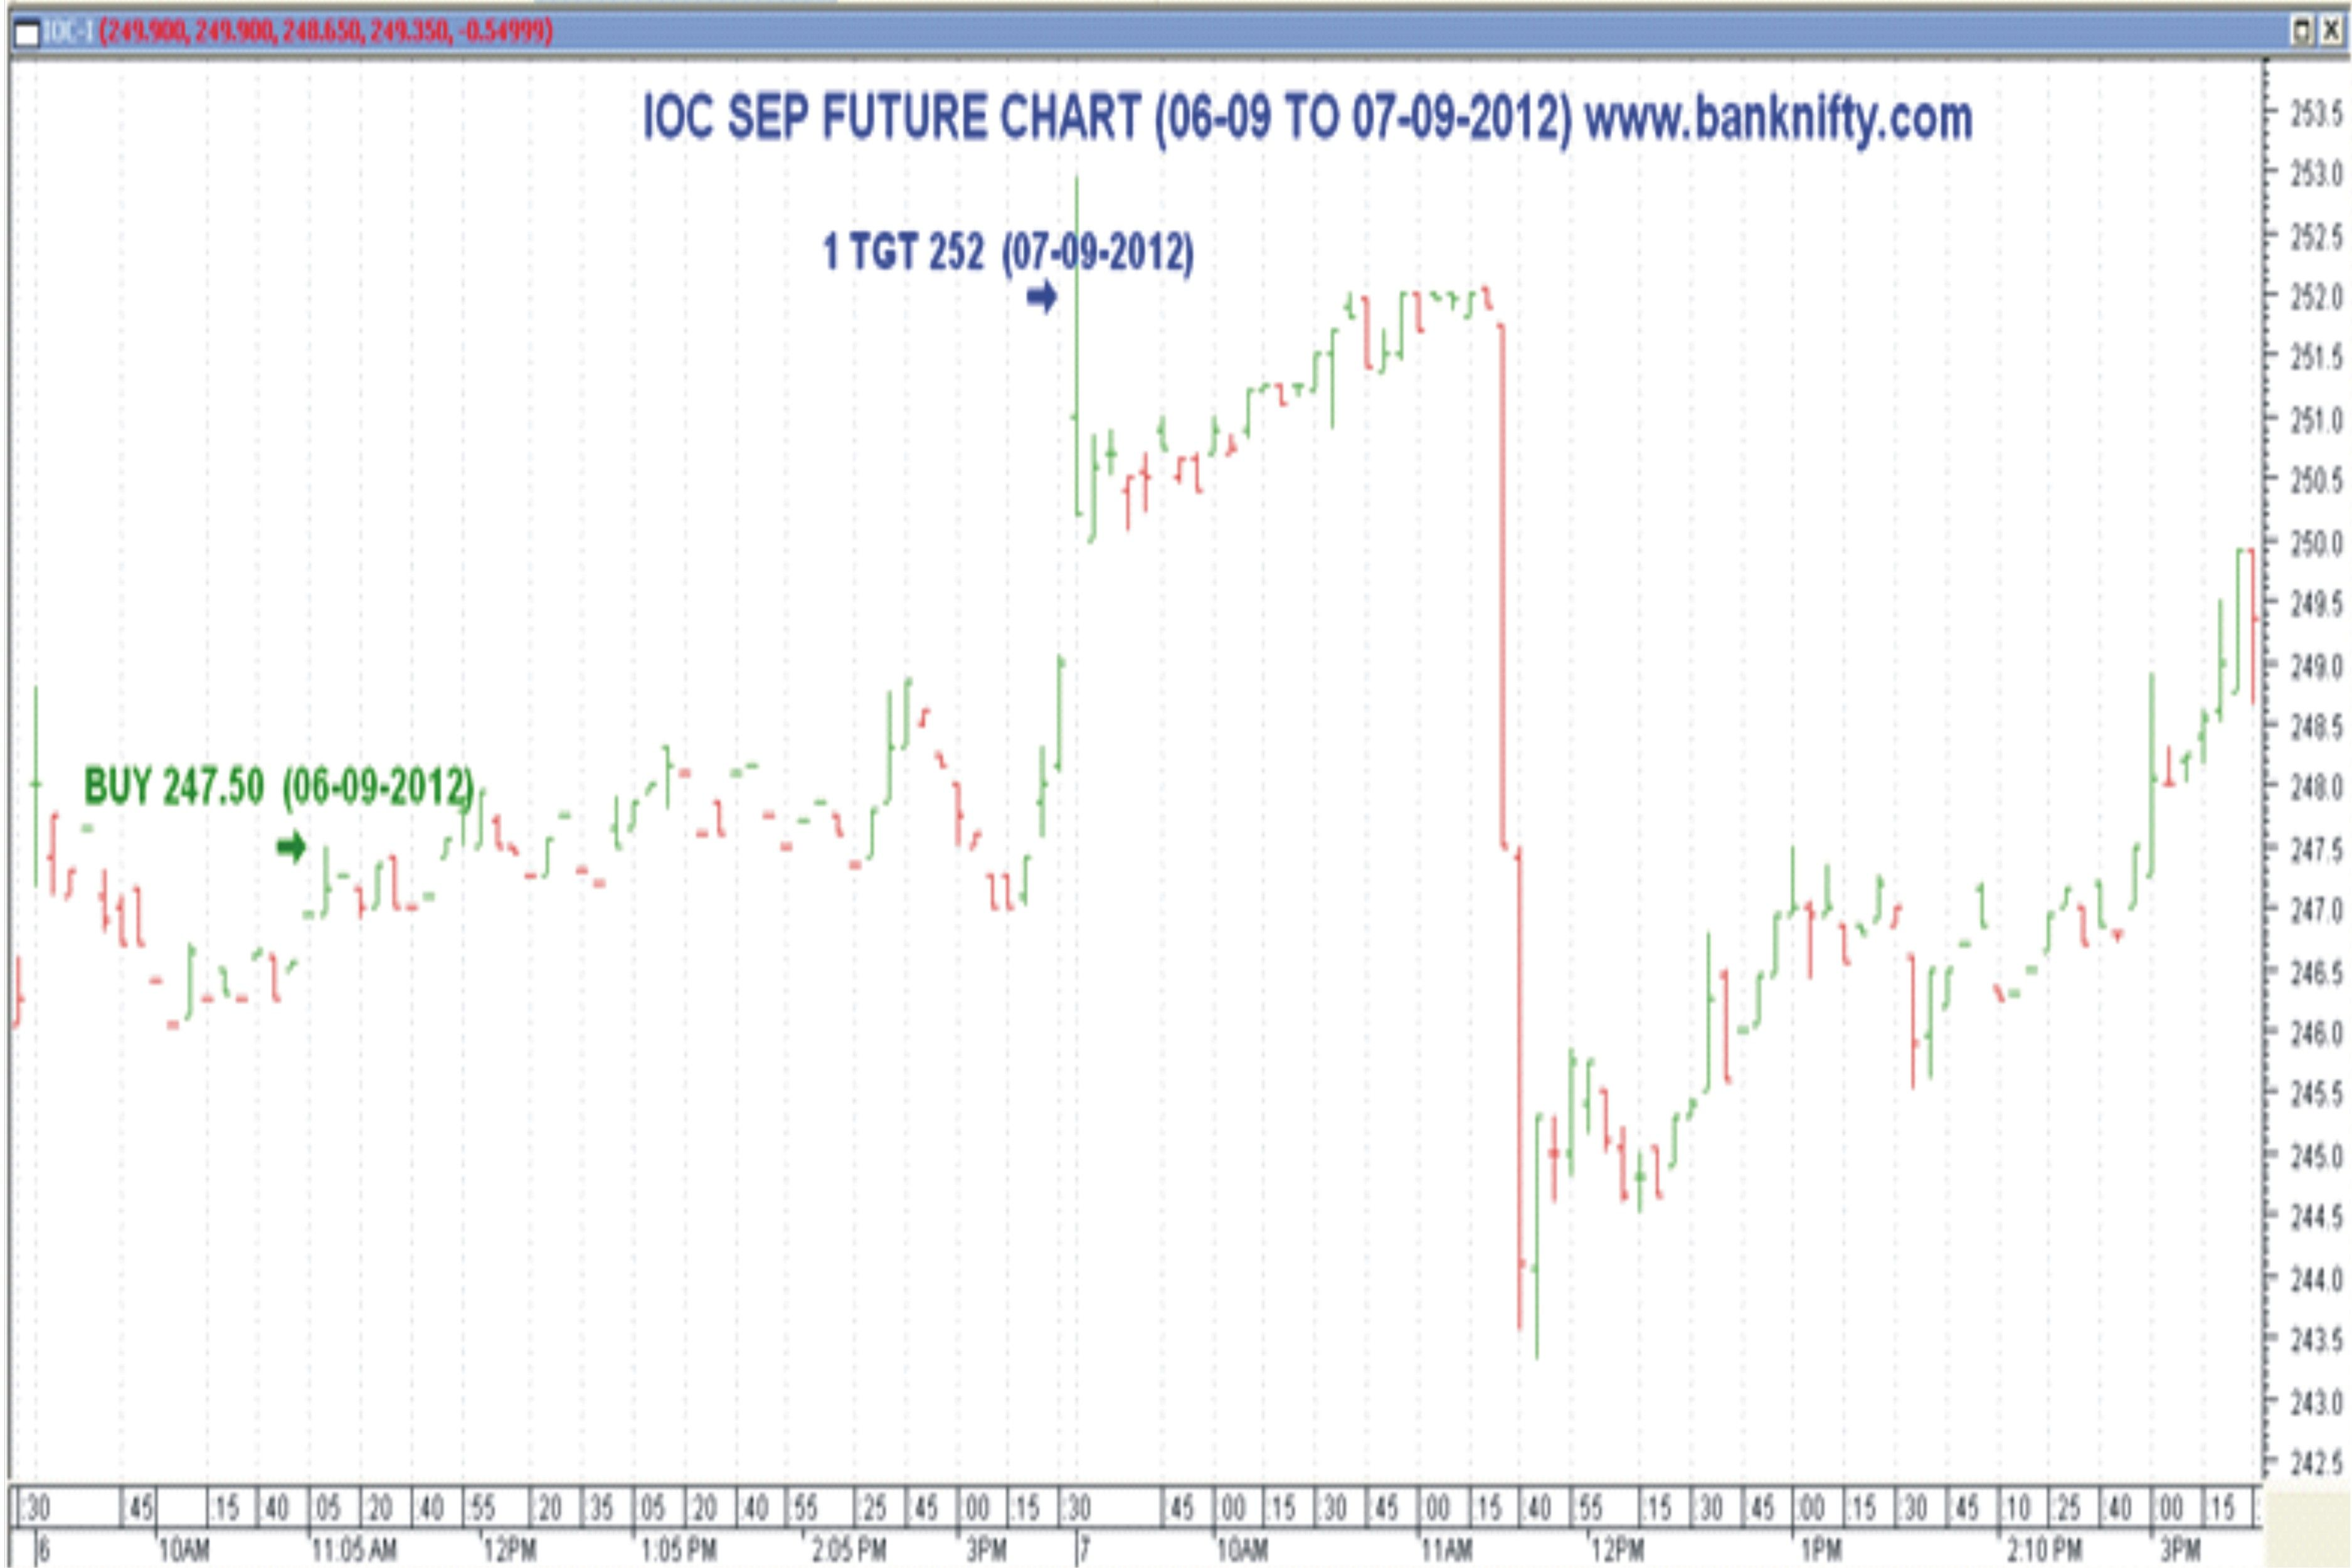 Banknifty Com Is A Concern Which Could Analyze Stock Market In All Ways Under Nse Nifty Futures Nse Stock Futures And Nse Bank Nifty Futu Stock Futures Stock Market Chart